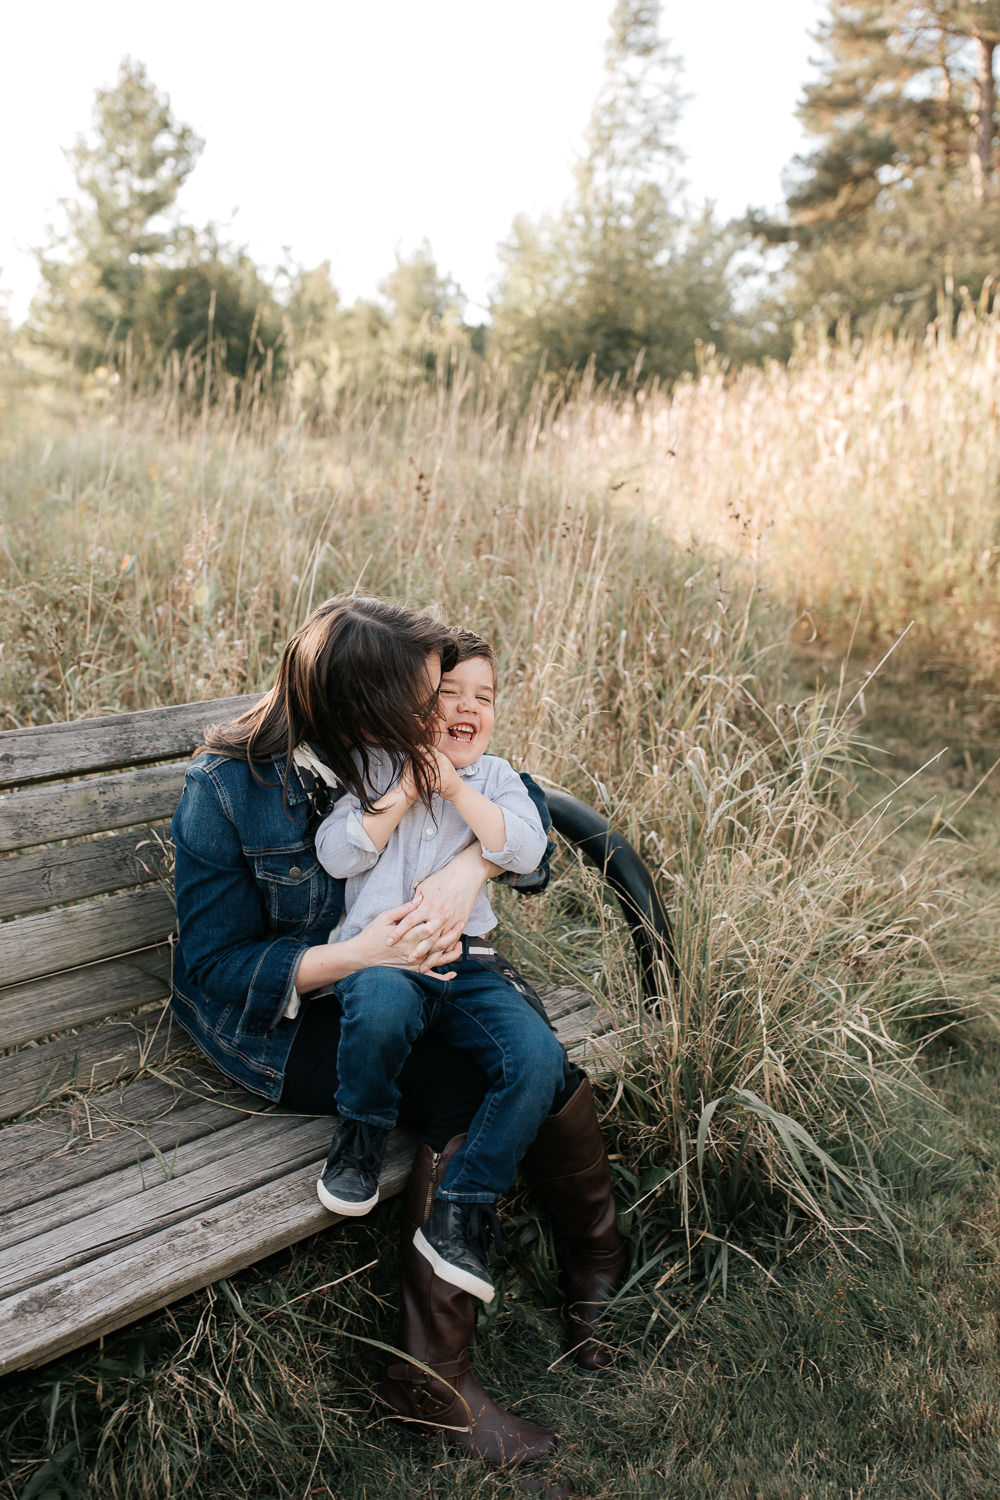 mother with dark brown hair sitting on park bench surrounded by tall grasses with 4 year old boy sitting in her lap, laughing as mom kisses son's face -York Region Lifestyle Photography